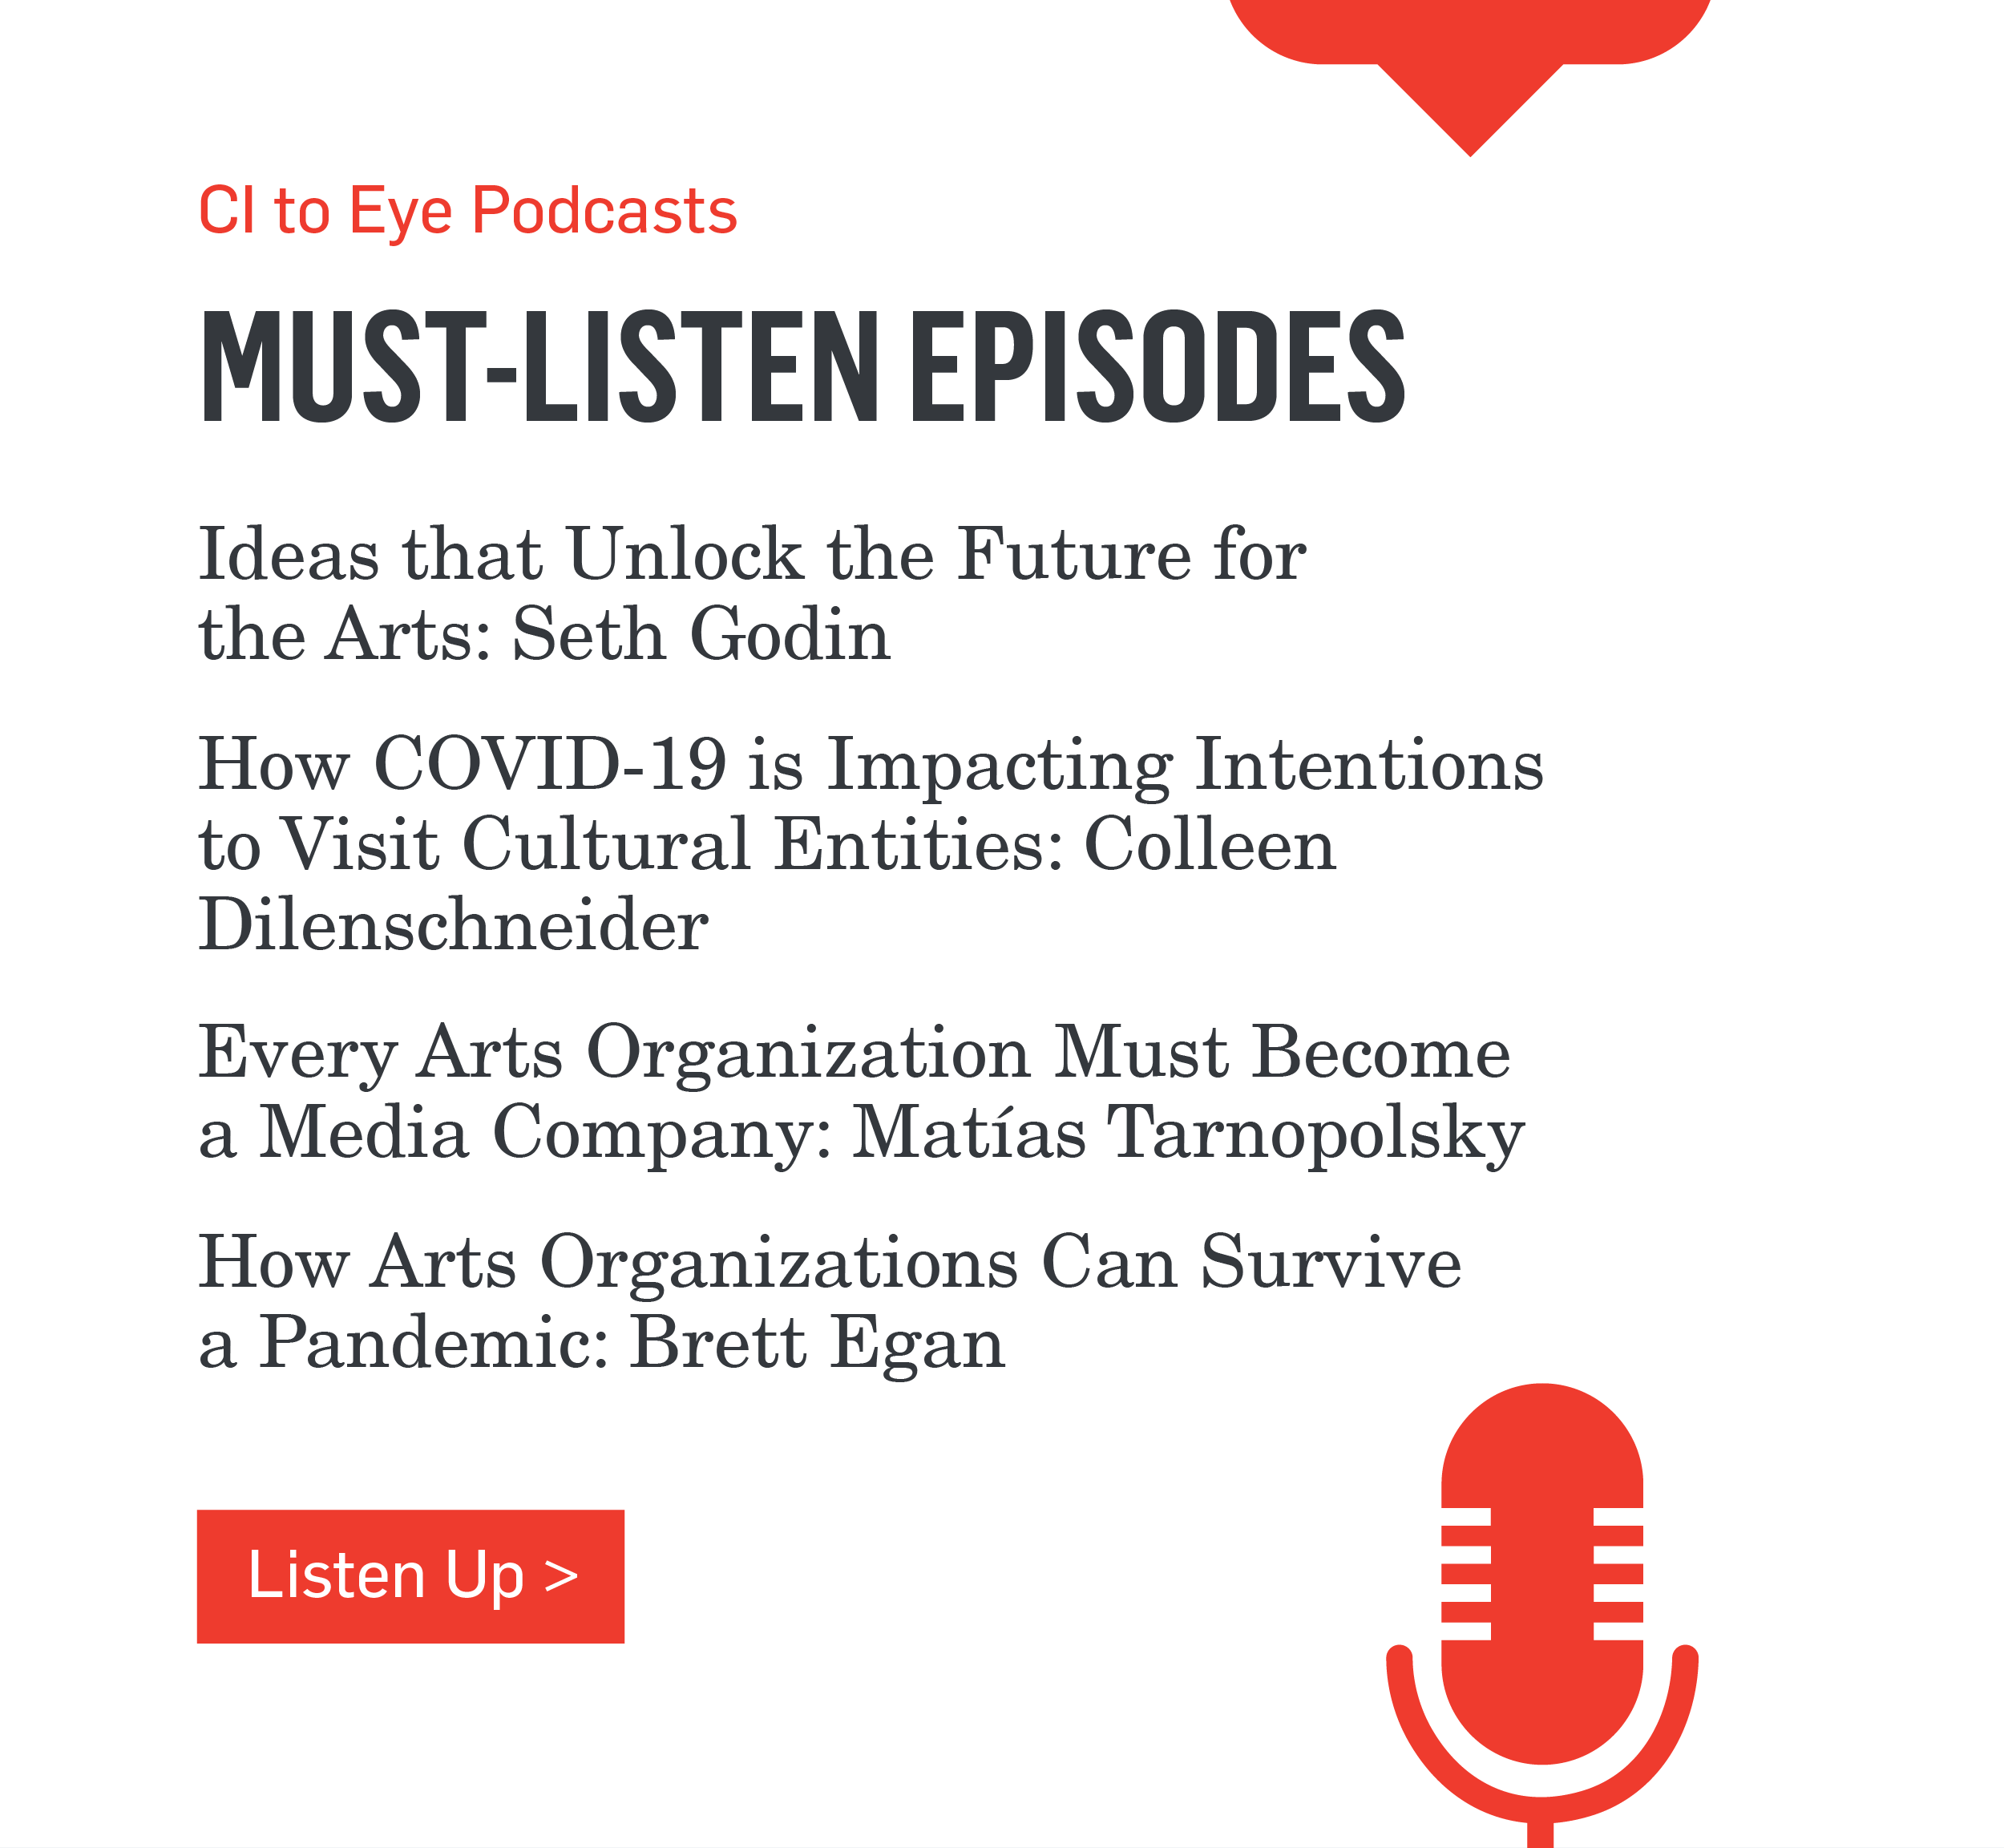 CI to Eye Podcasts - MUST-LISTEN EPISODES - Ideas that Unlock the Future for the Arts: Seth Godin - How COVID-19 is Impacting Intentions to Visit Cultural Entities: Colleen Dilenschneider - Every Arts Organization Must Become a Media Company: Matías Tarnopolsky - How Arts Organizations Can Survive a Pandemic: Brett Egan >>>Listen Up>>>